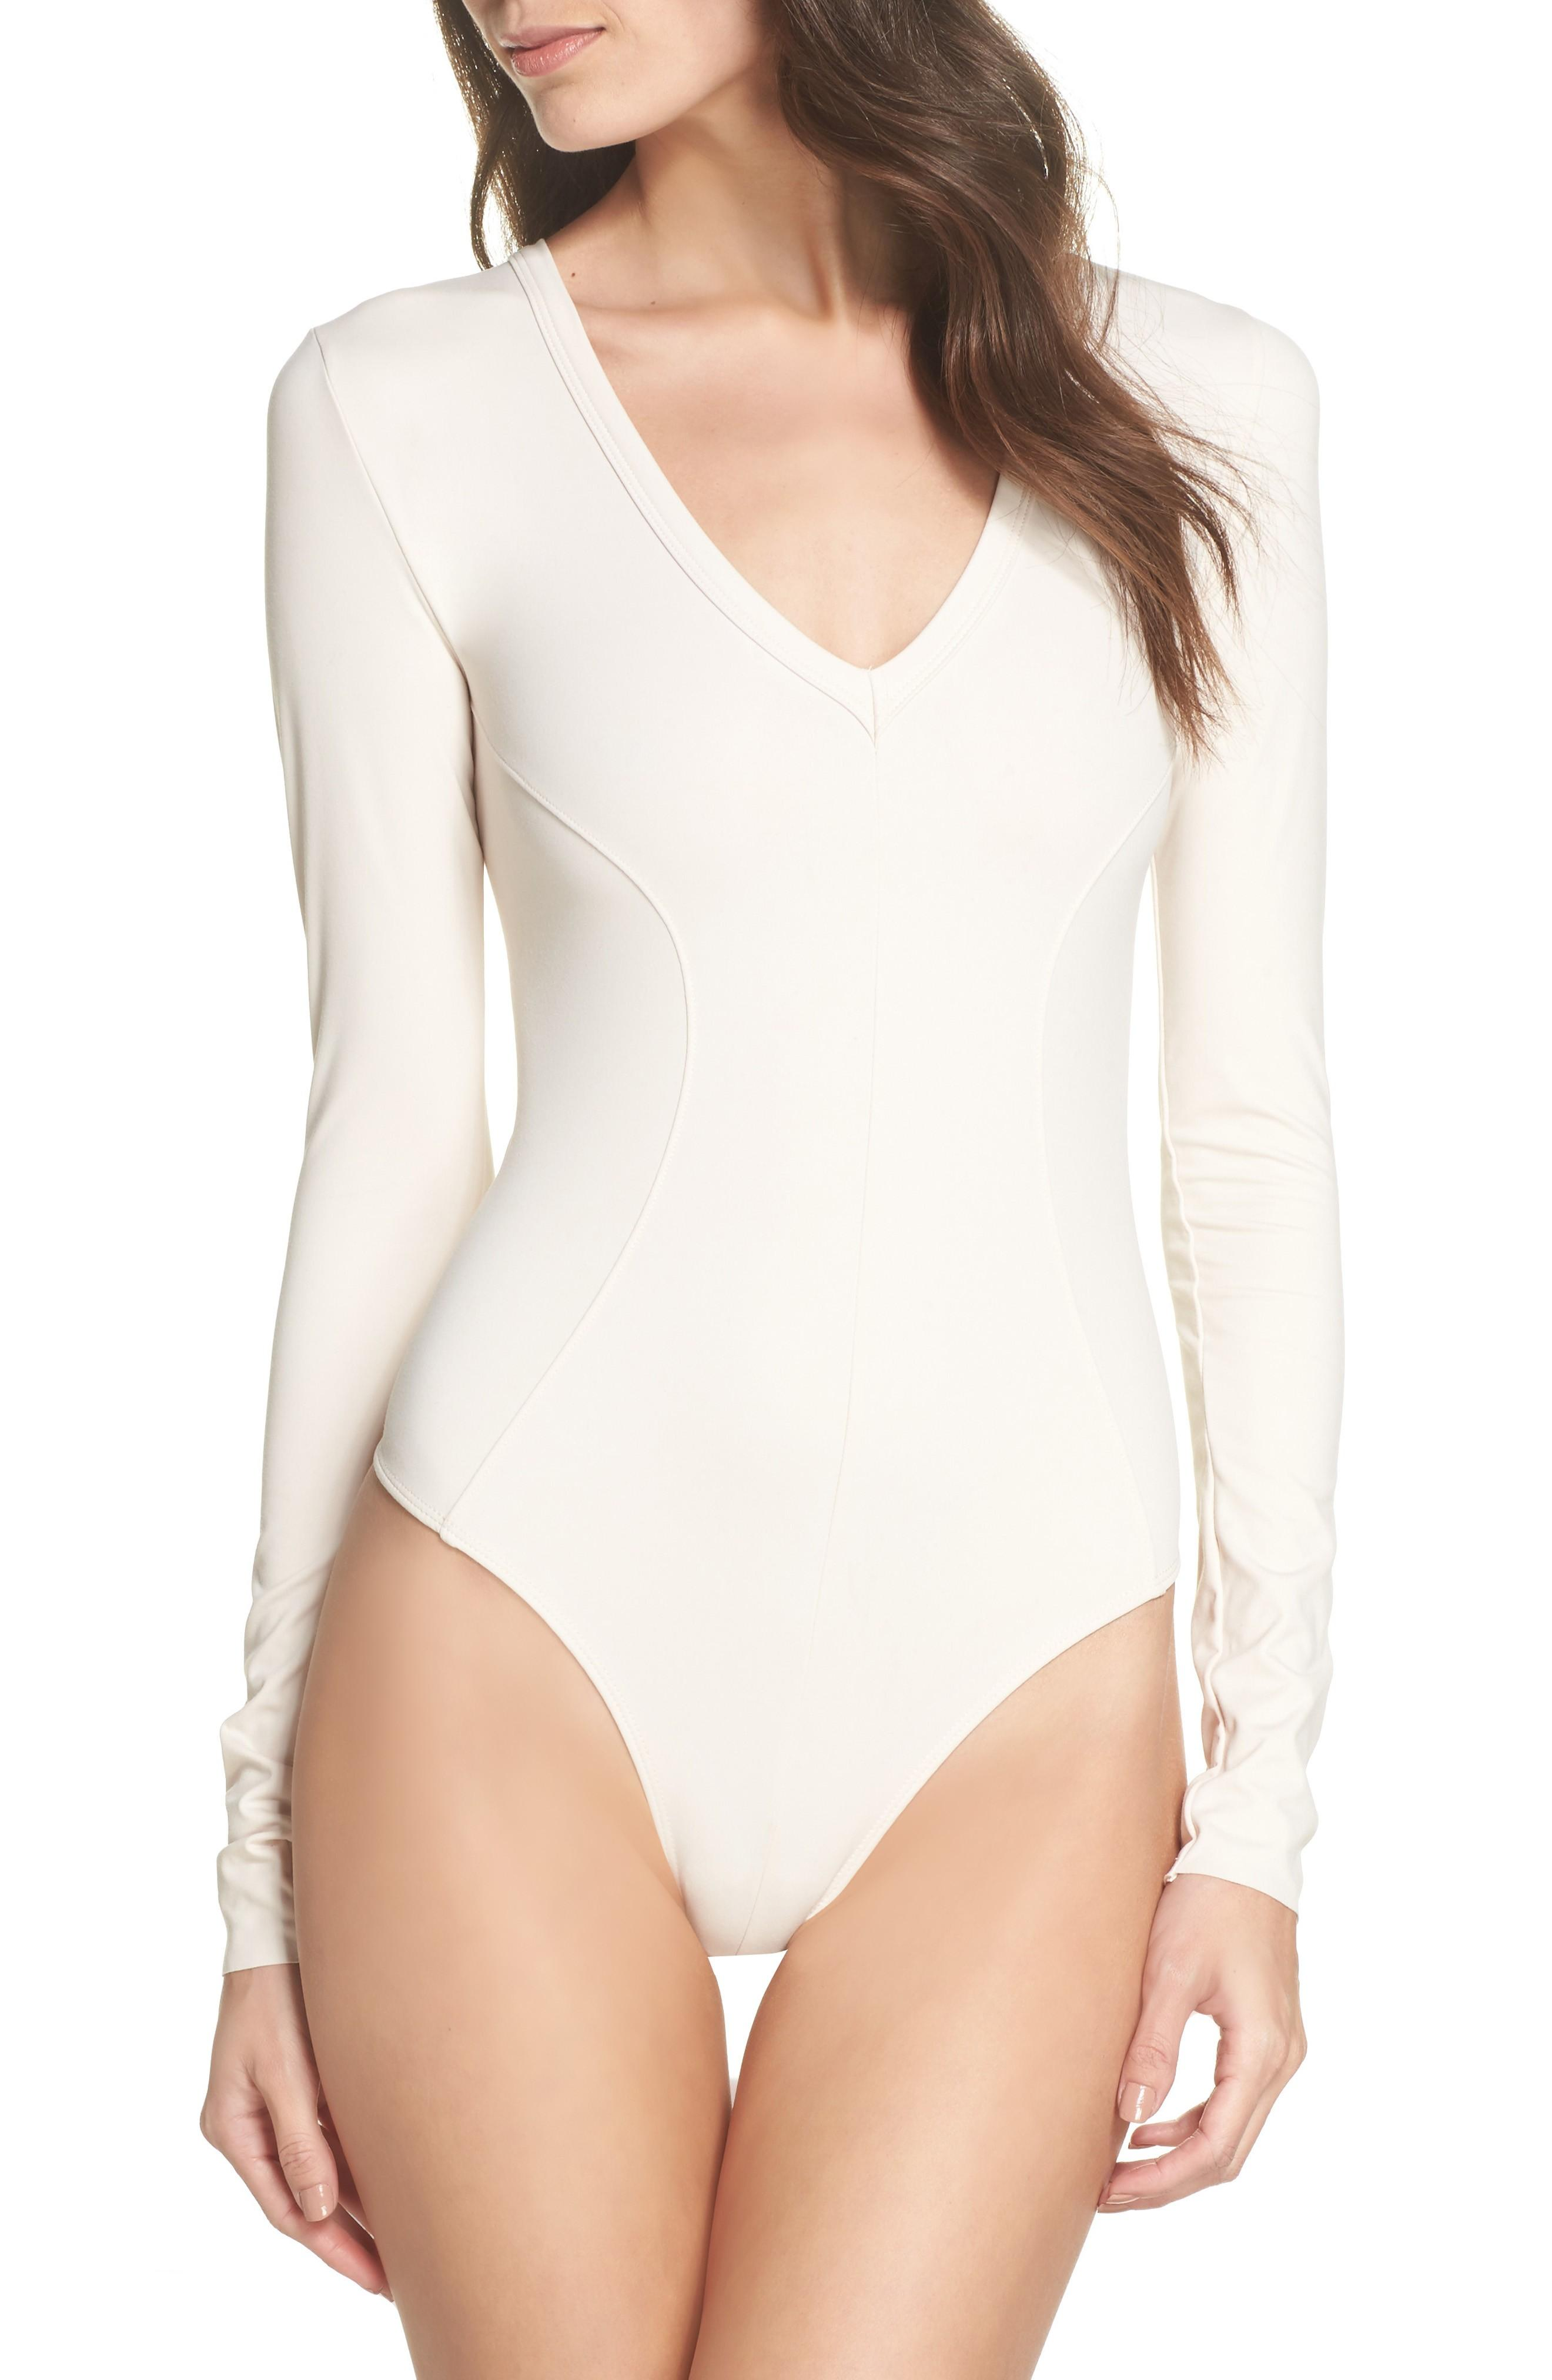 Intimately Free People Womens In Your Pocket Cotton Thong Bodysuit Top BHFO 0144